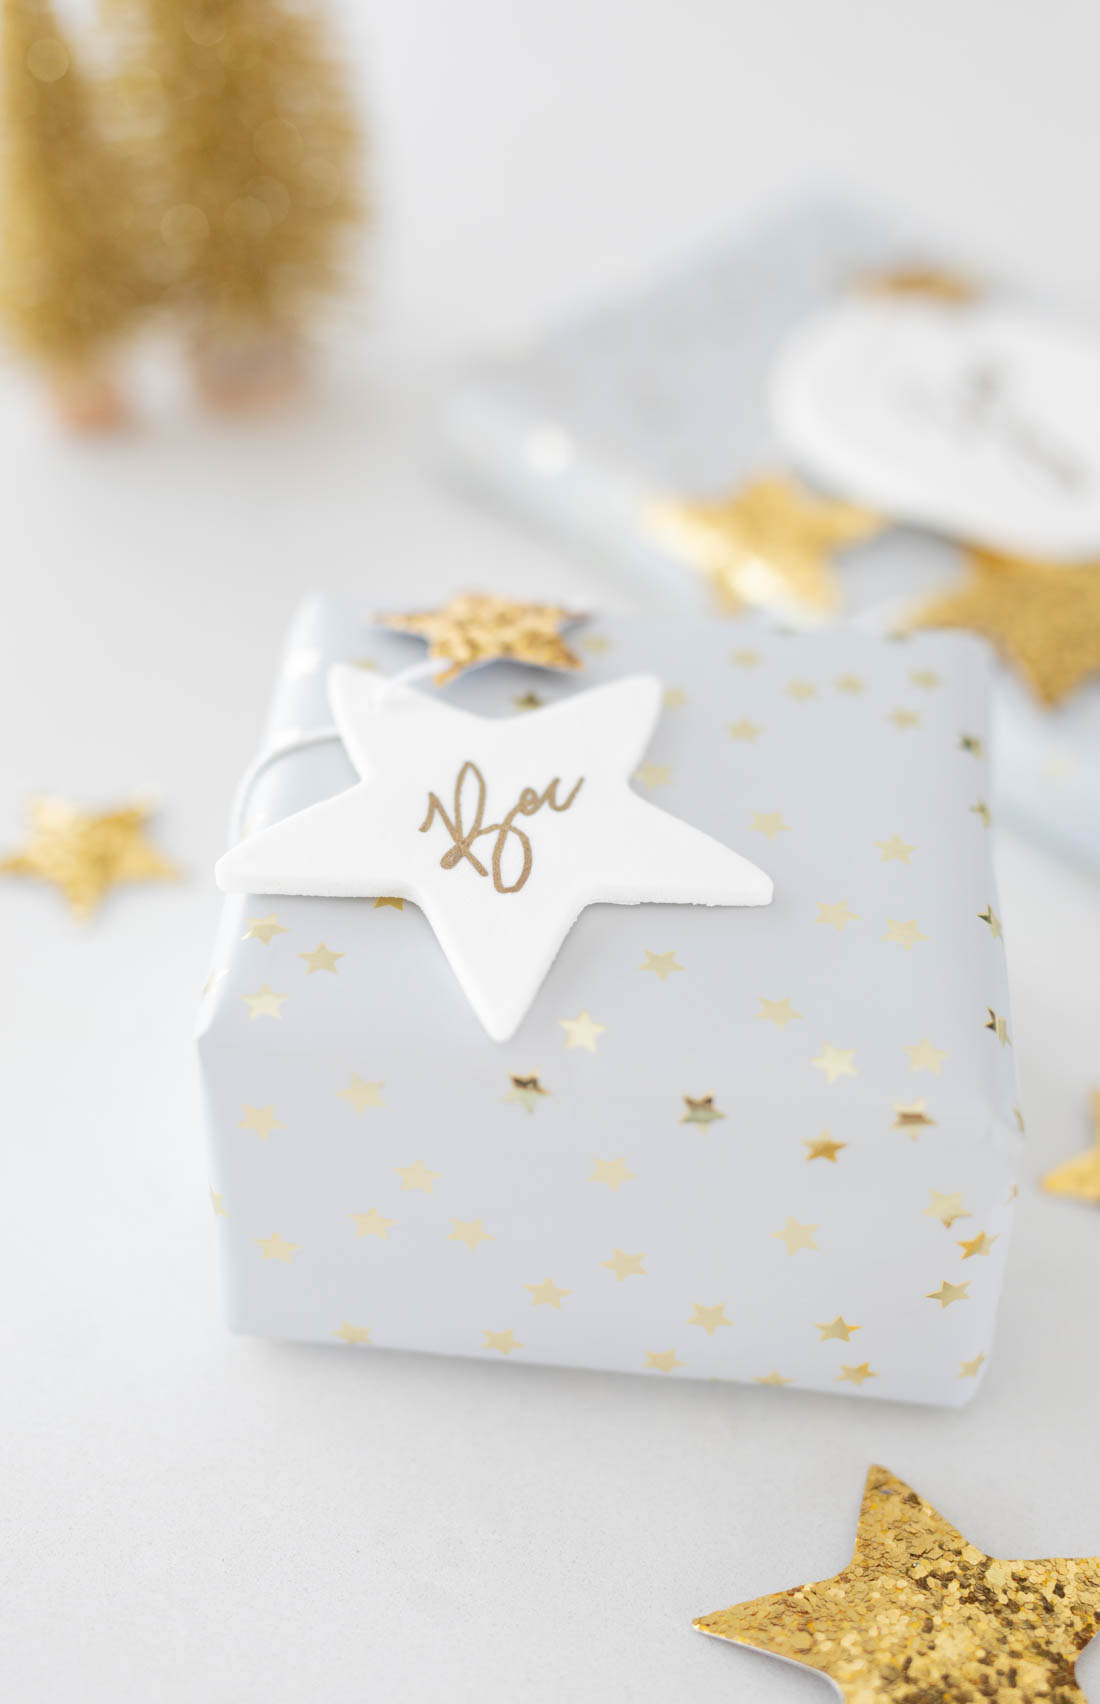 Easy DIY clay gift tags